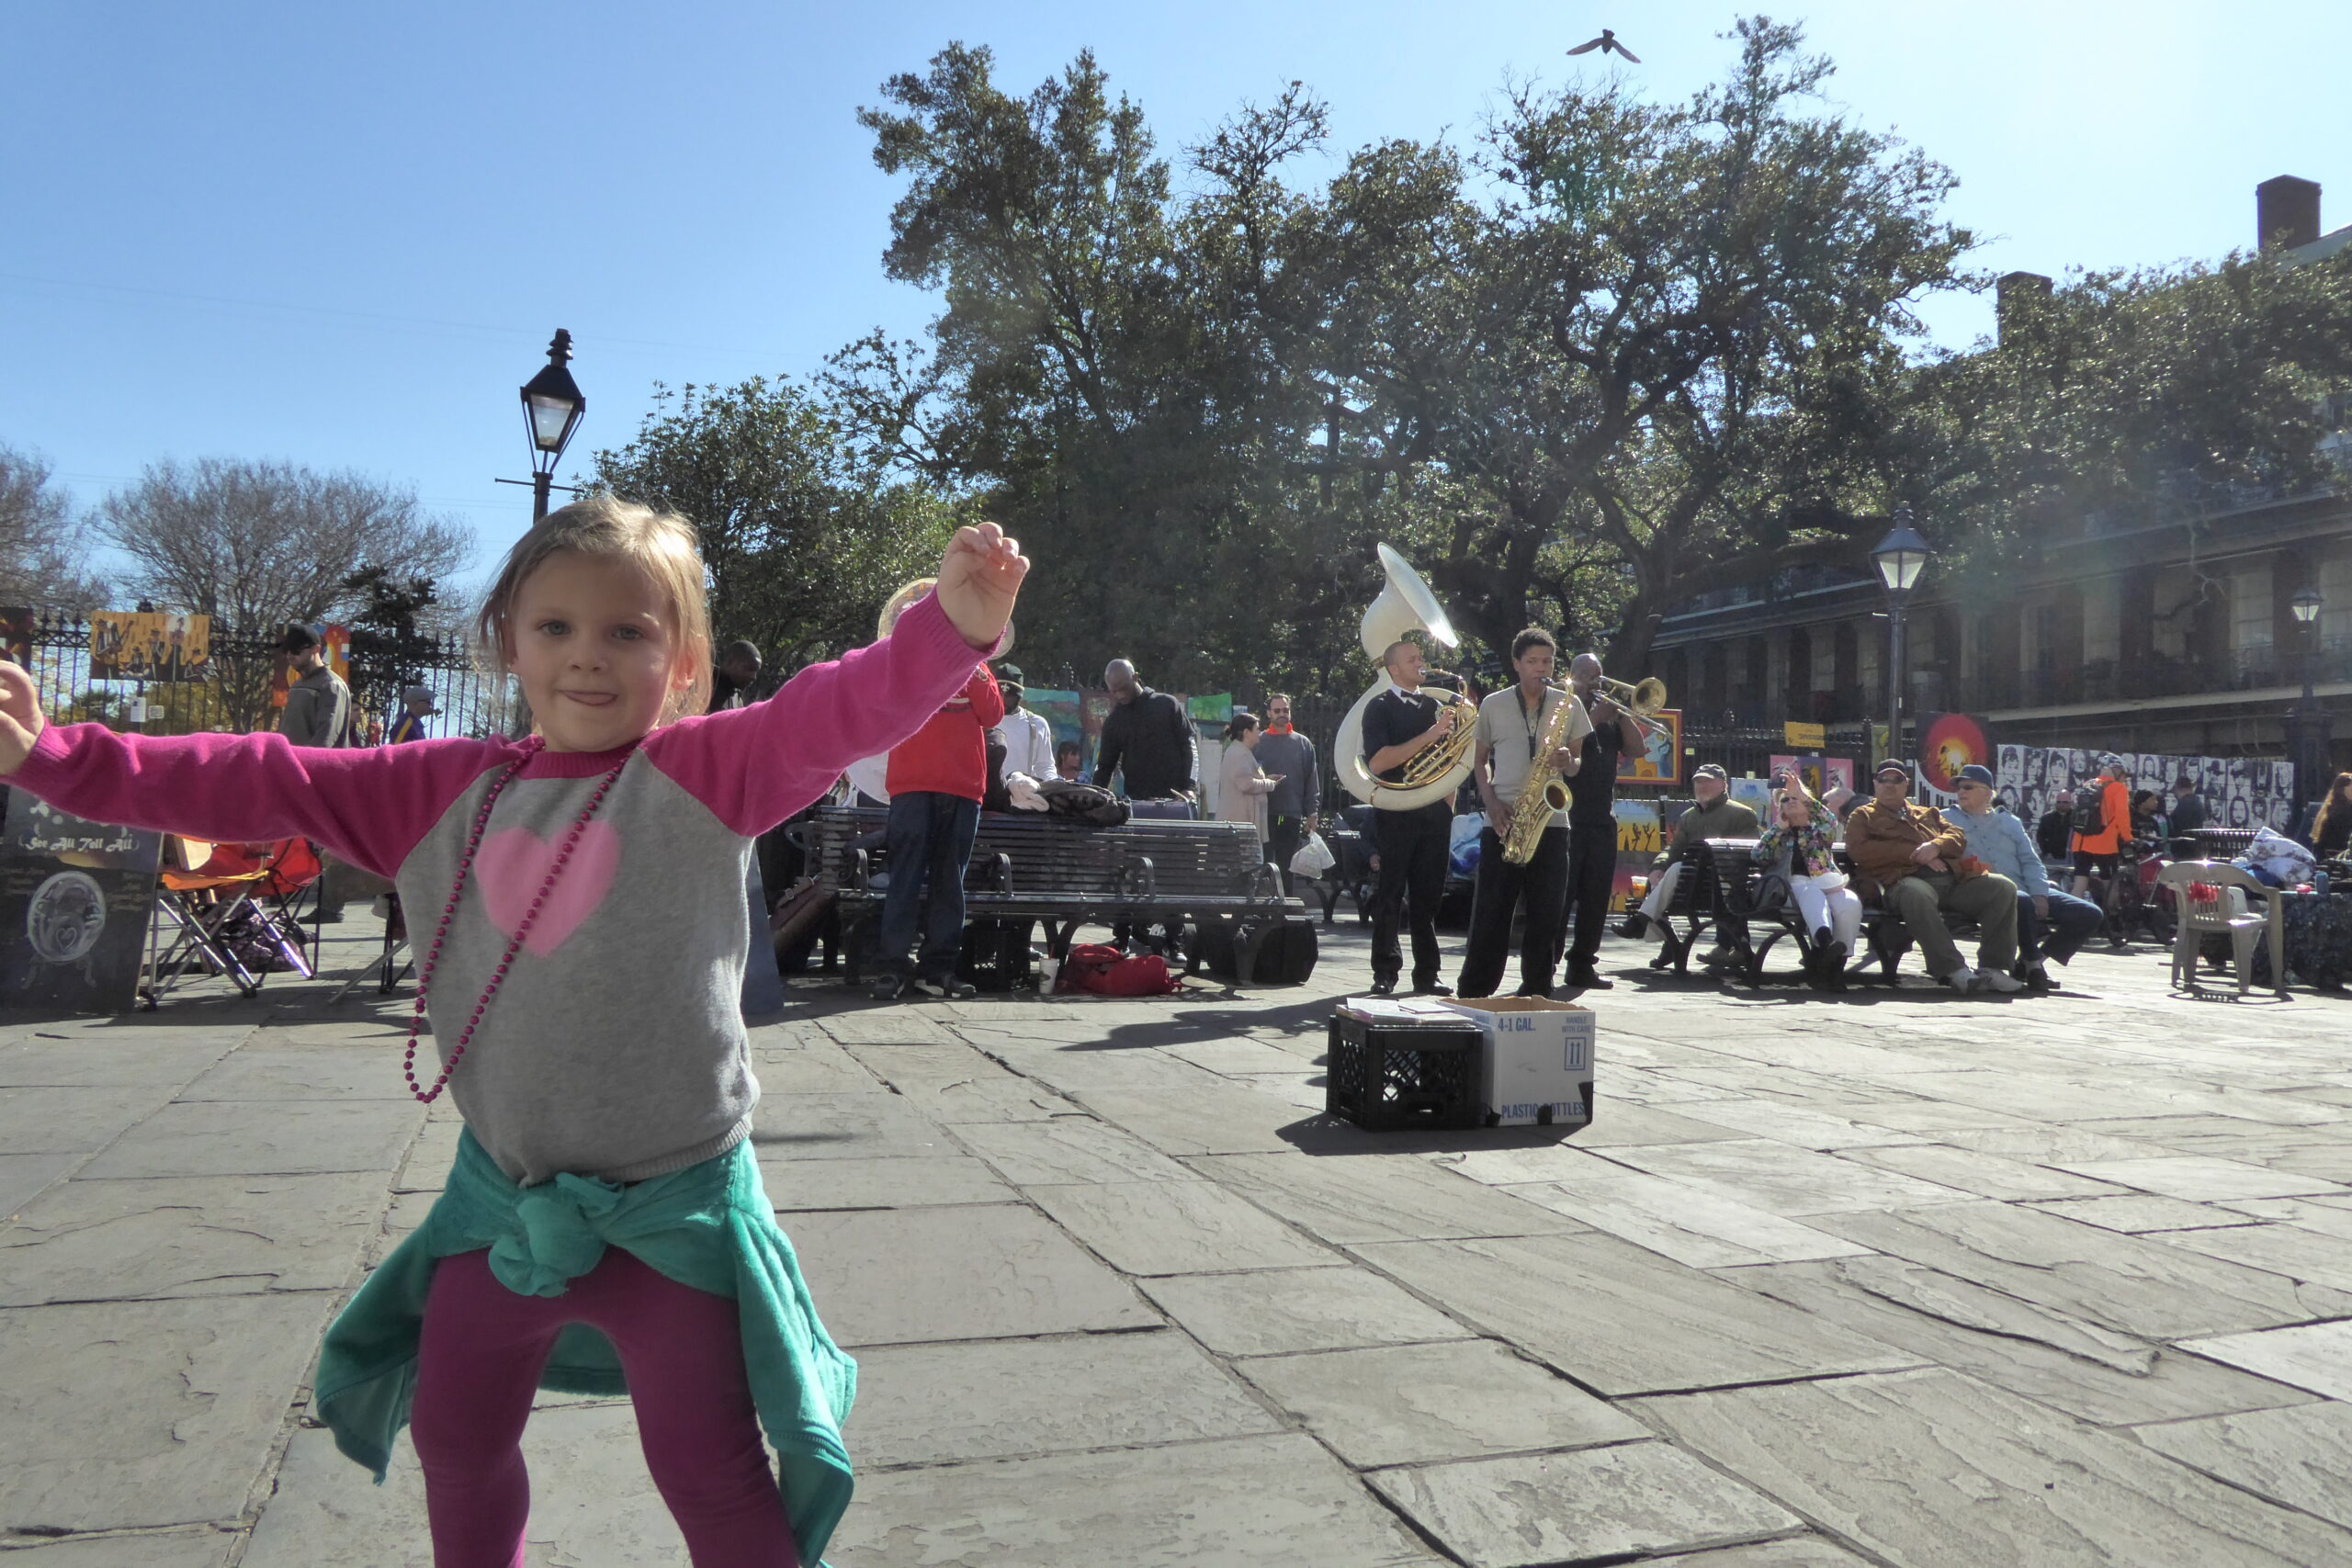 blonde child wearing beads dancing in front of a street band